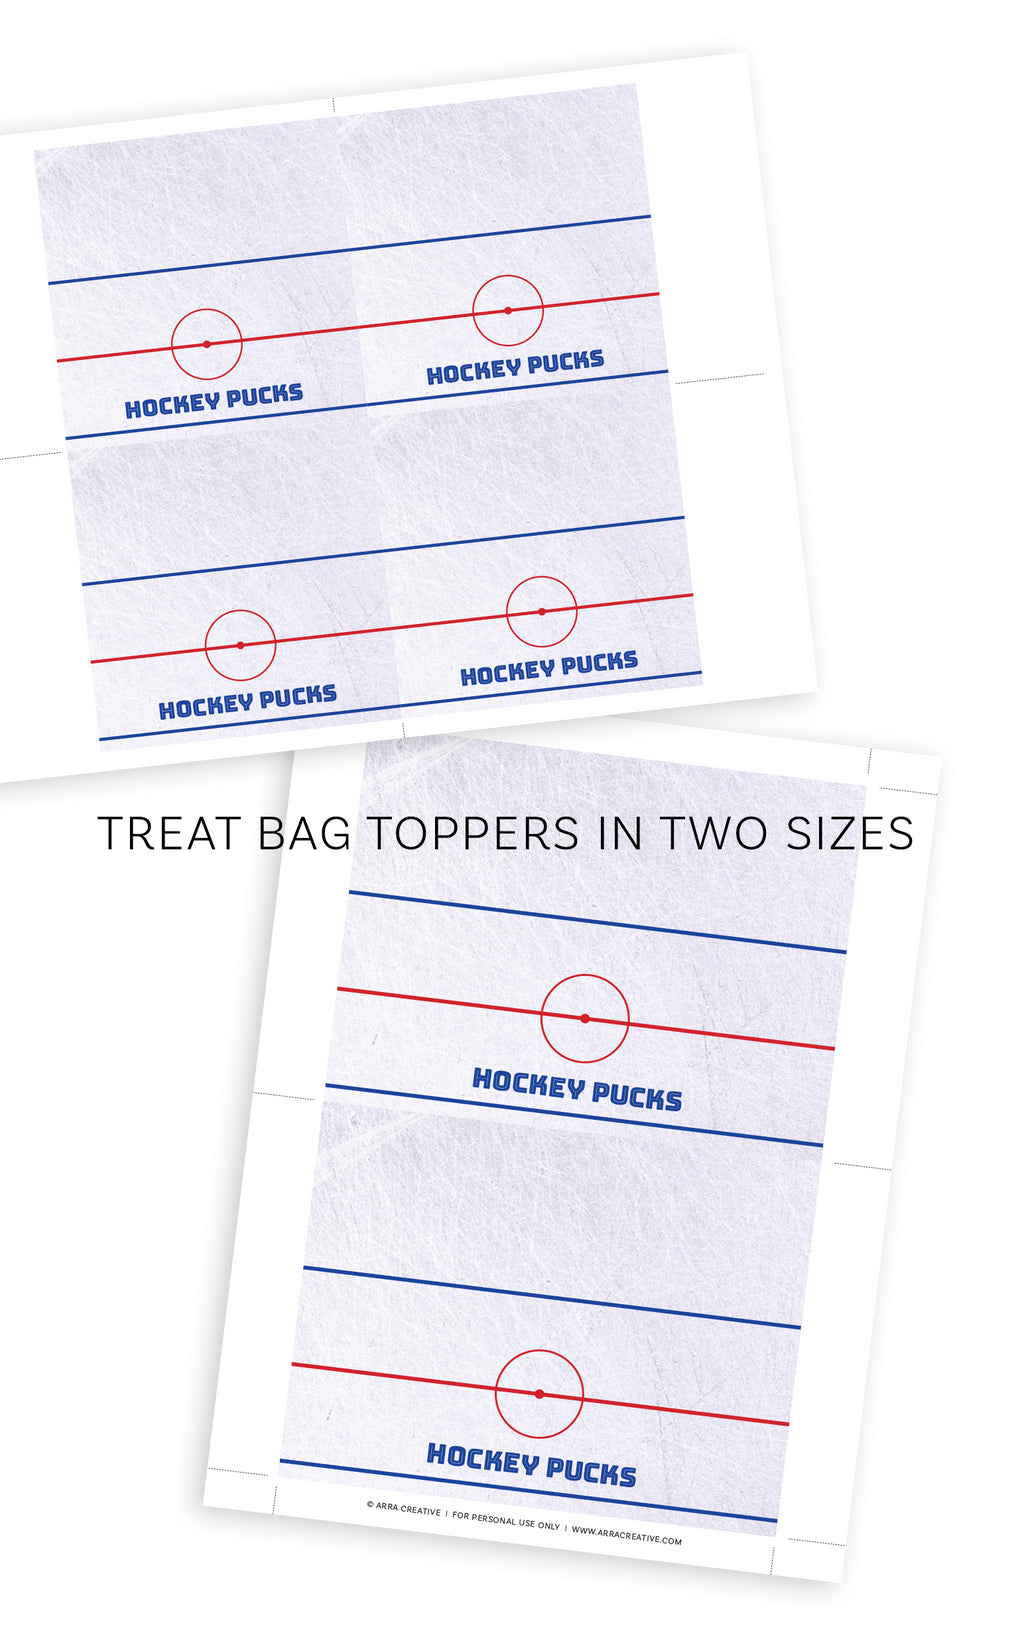 Hockey Treat Bag Toppers